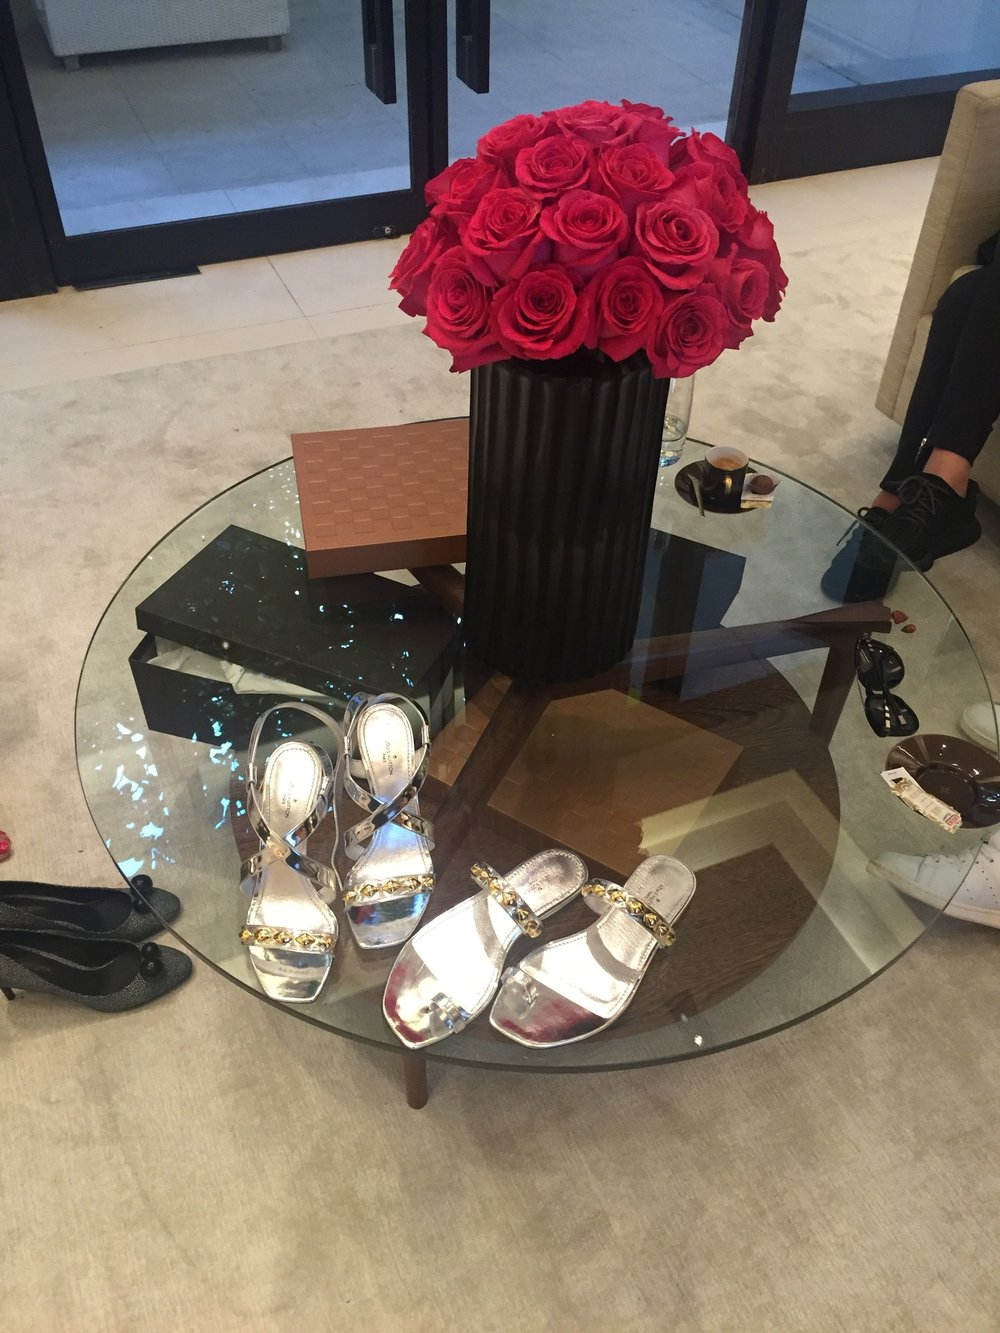 Louis Vuitton Cruise 2017 Rio de Janeiro - After our spa appointments, we headed to the Louis Vuitton Rio Ipanema store for a little shopping! A few items, like these beautiful sliver shoes, are only available in this store.